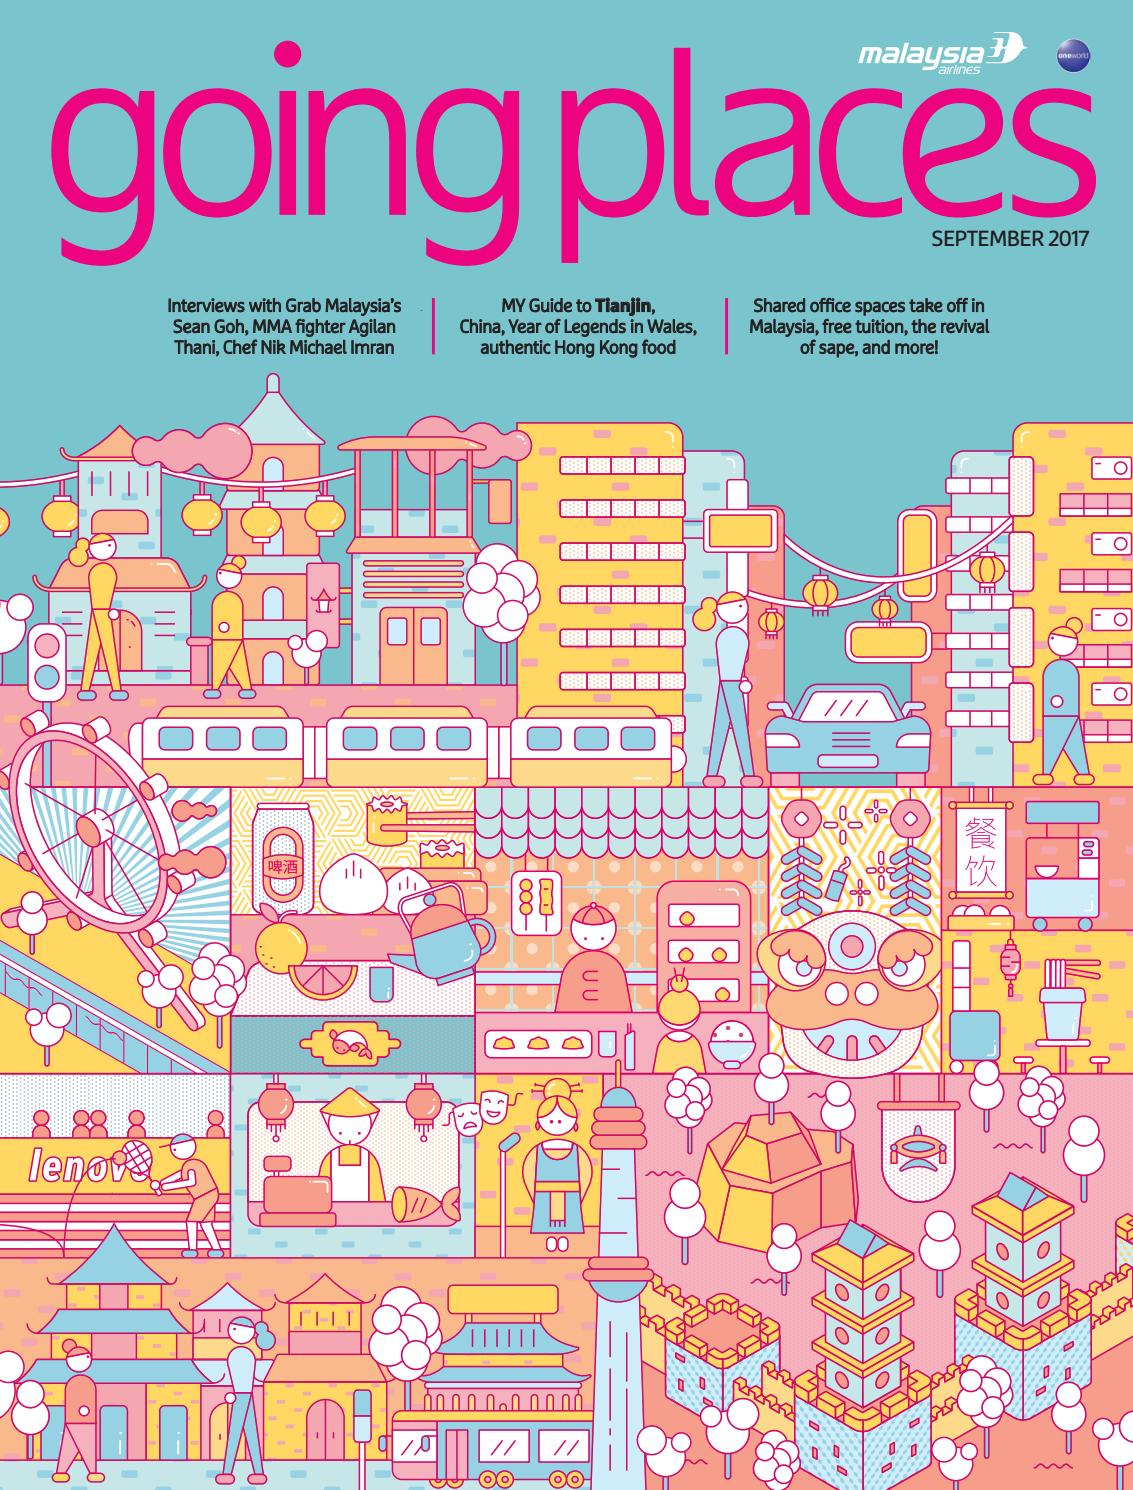 Going places september 2017 by spafax malaysia issuu stopboris Gallery